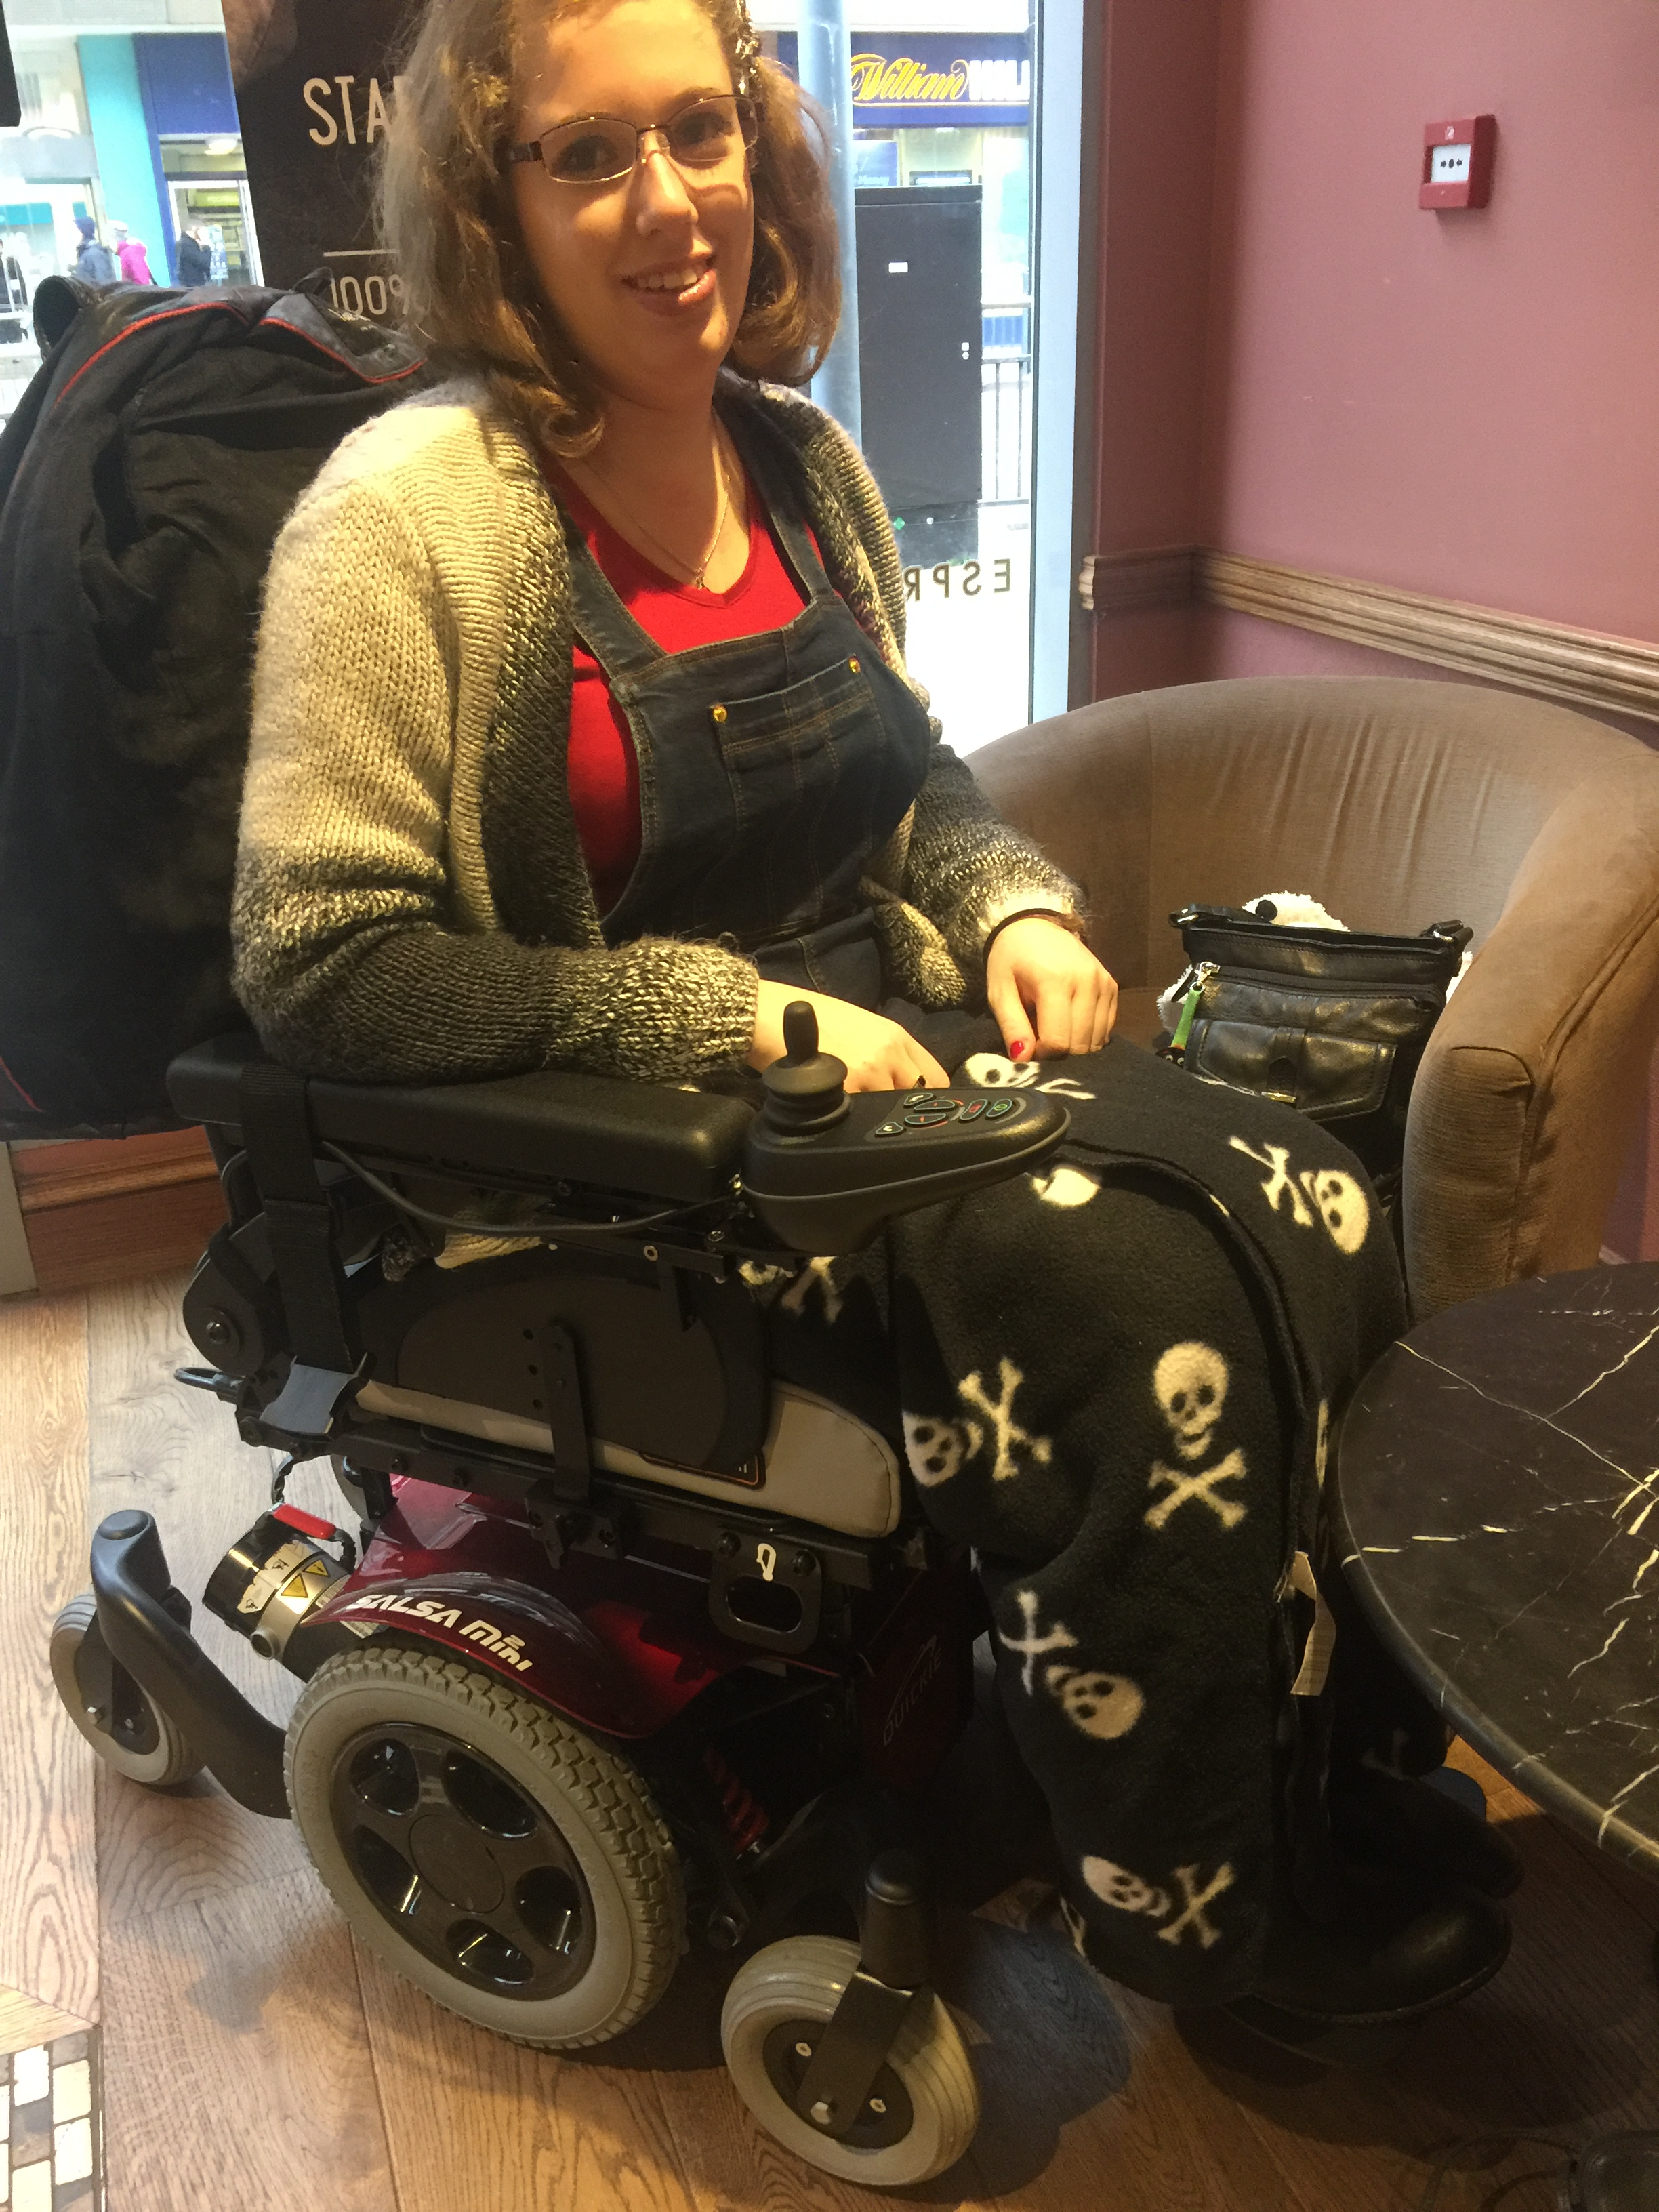 I'm sat in my powered wheelchair in a coffee shop. I have my skull and crossbones blanket on my knee, and my red top & dark blue pinafore are visible beneath my chunky knit cardigan.